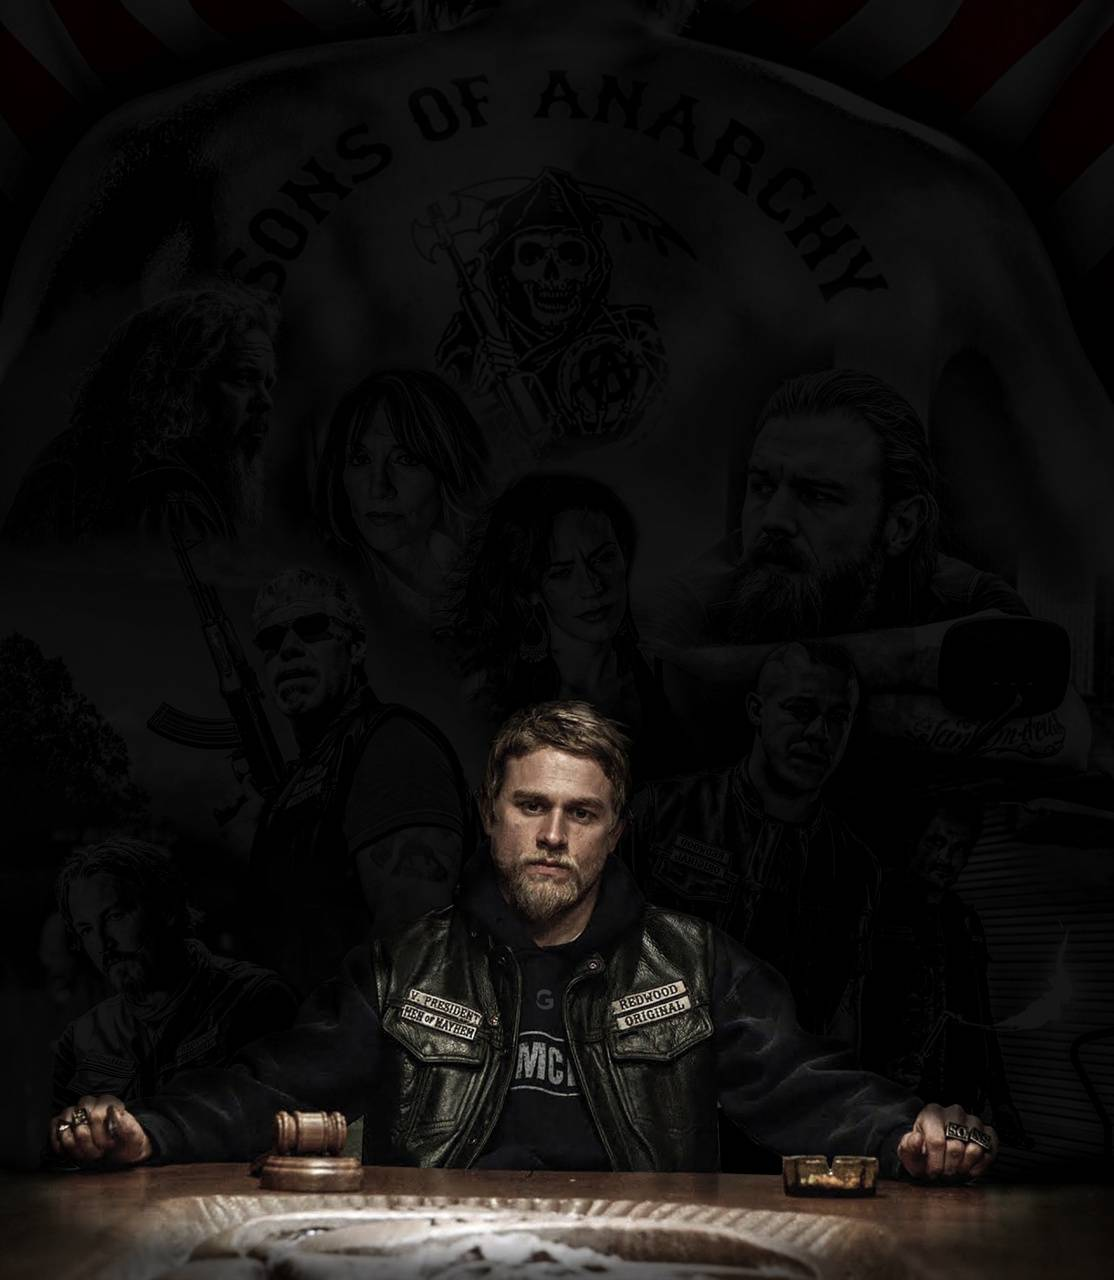 Sons Of Anarchy Wallpaper By Granatographics17 Fe Free On Zedge